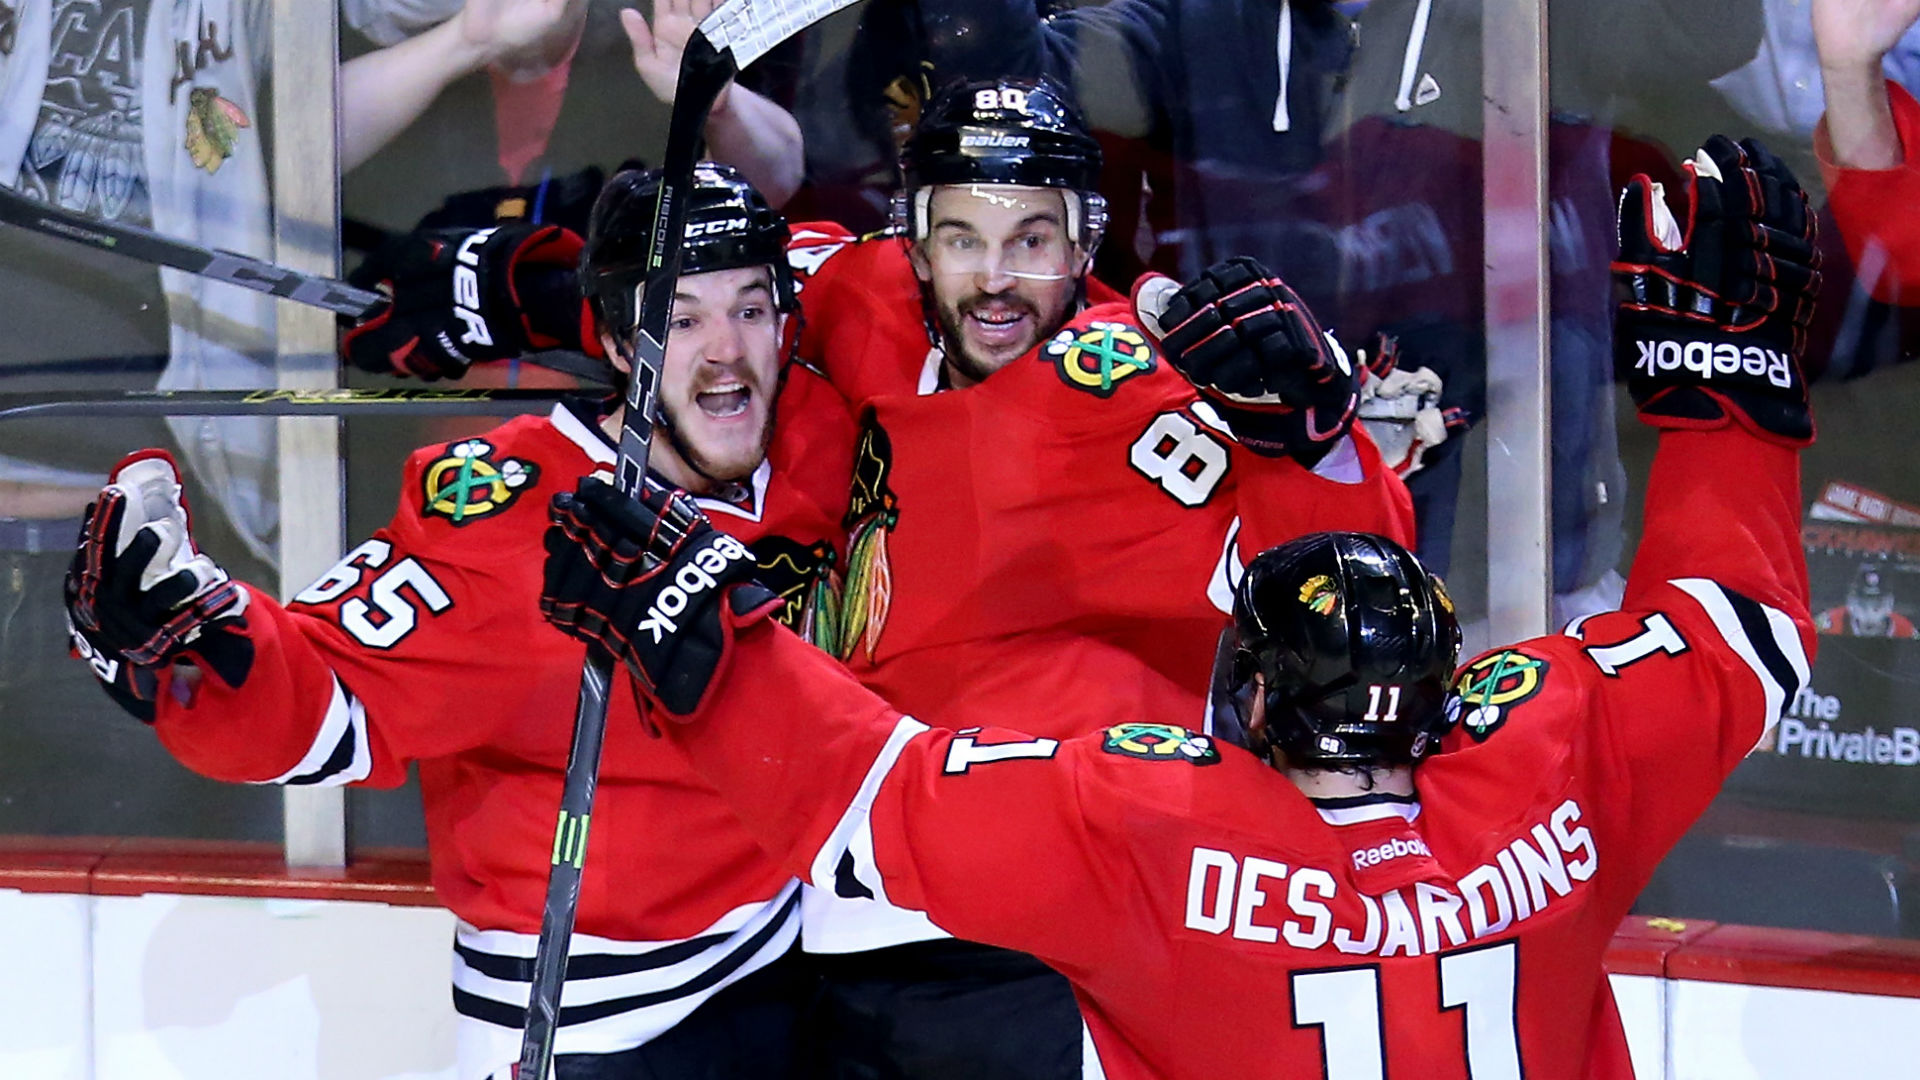 Western Conference finals: Blackhawks force Game 7 with win over Ducks